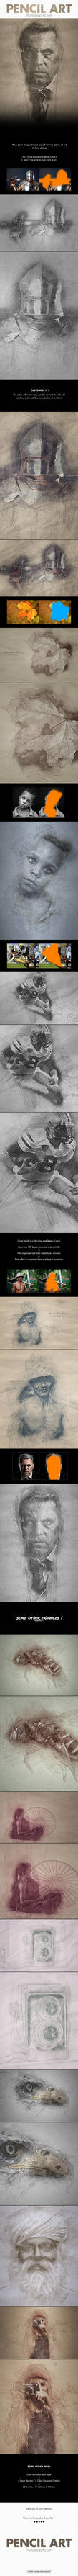 Pencil Art - Photoshop Action by NuwanP